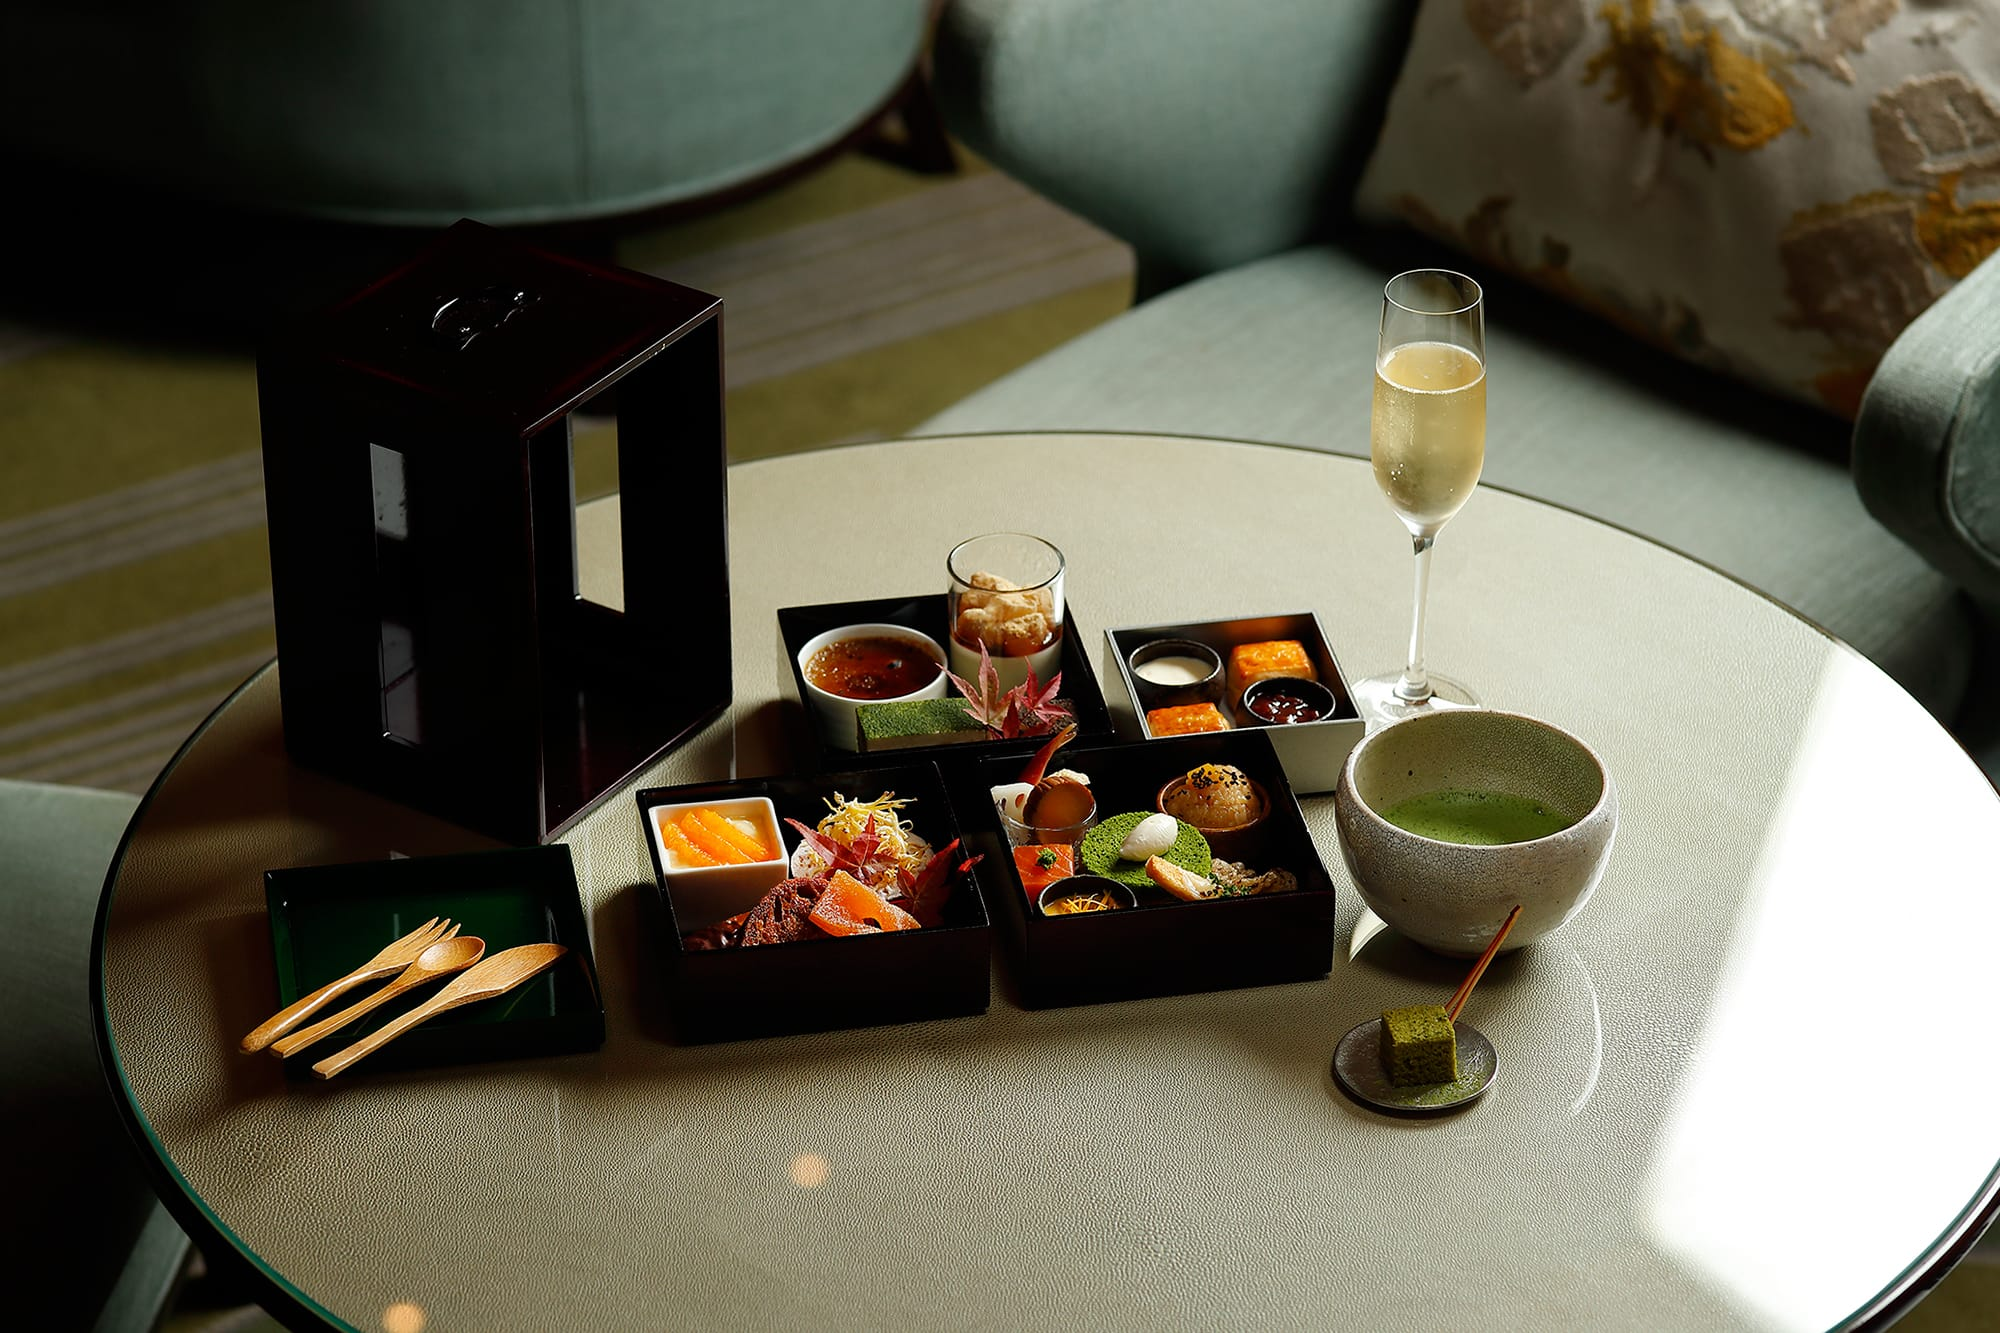 Jyugetsudo, the tea speciality store is presenting their Kuradashi Koicha (Aged Thick Tea) and confections using their Kuradashi Usucha (Aged Light Tea). The guests will discover a new fascination in Japanese Tea. The combination with a glass of champagne can be selected as well.